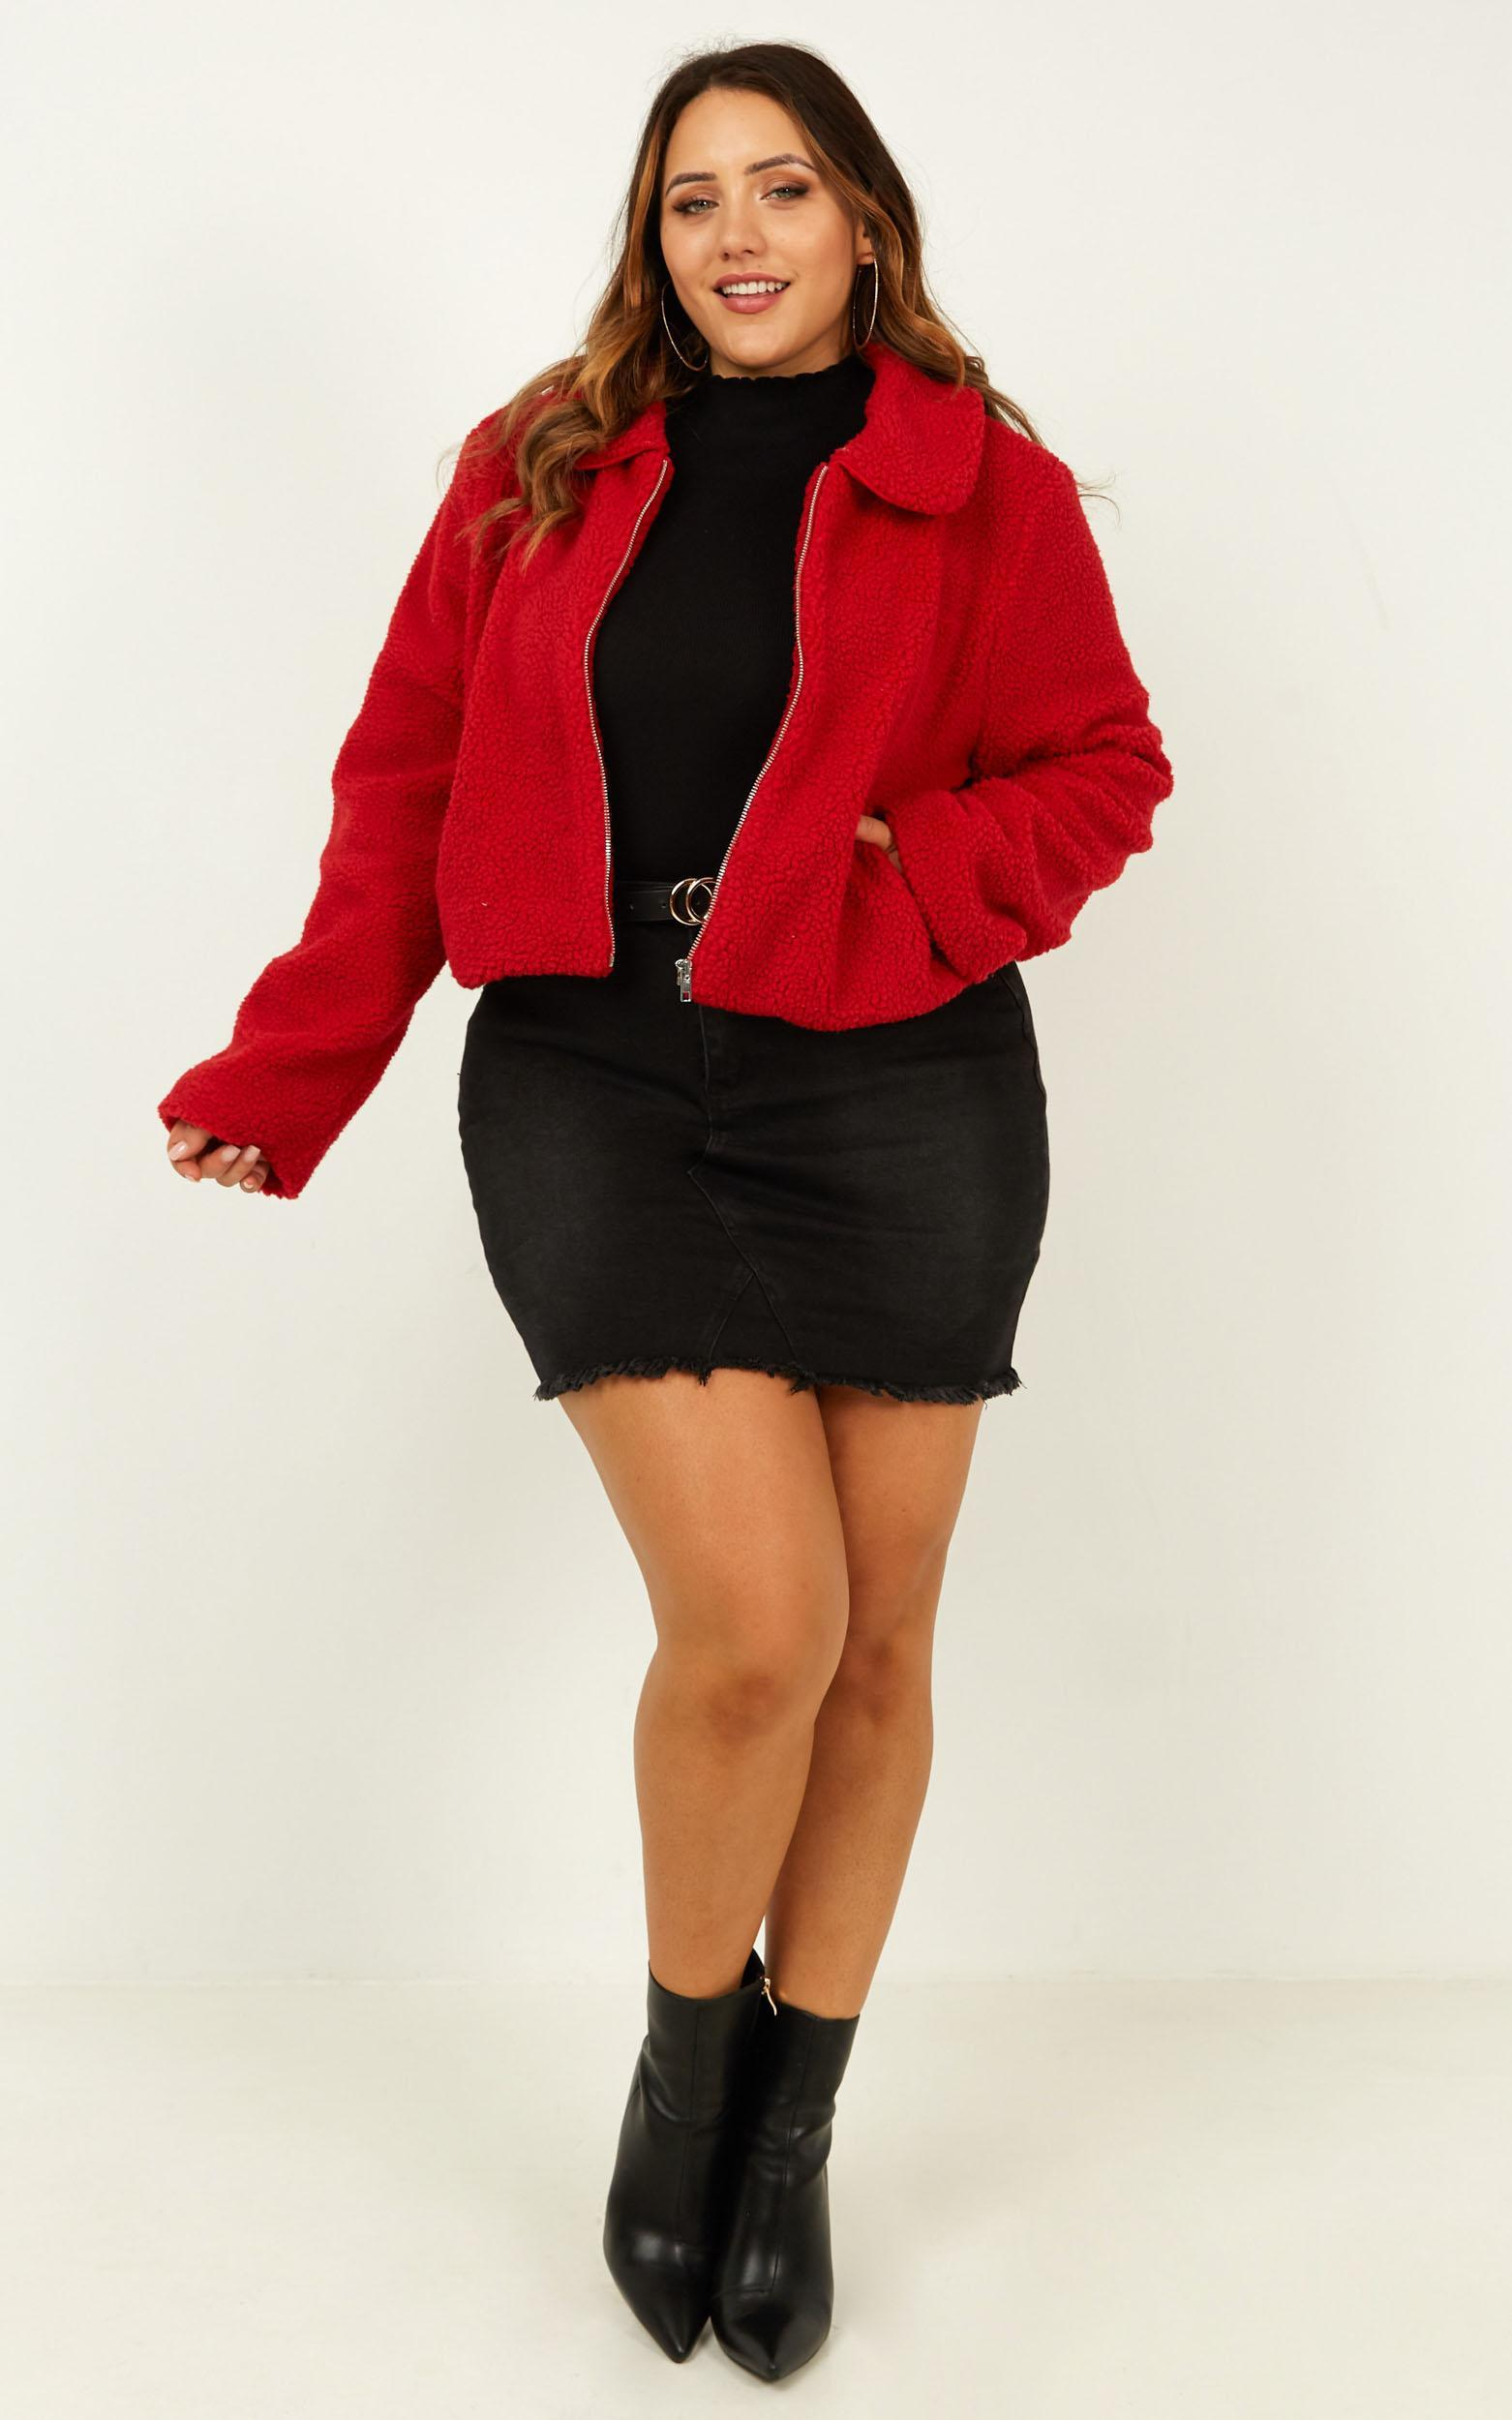 Forever Cuddling Jacket In Red Teddy - 16 (XXL), Red, hi-res image number null